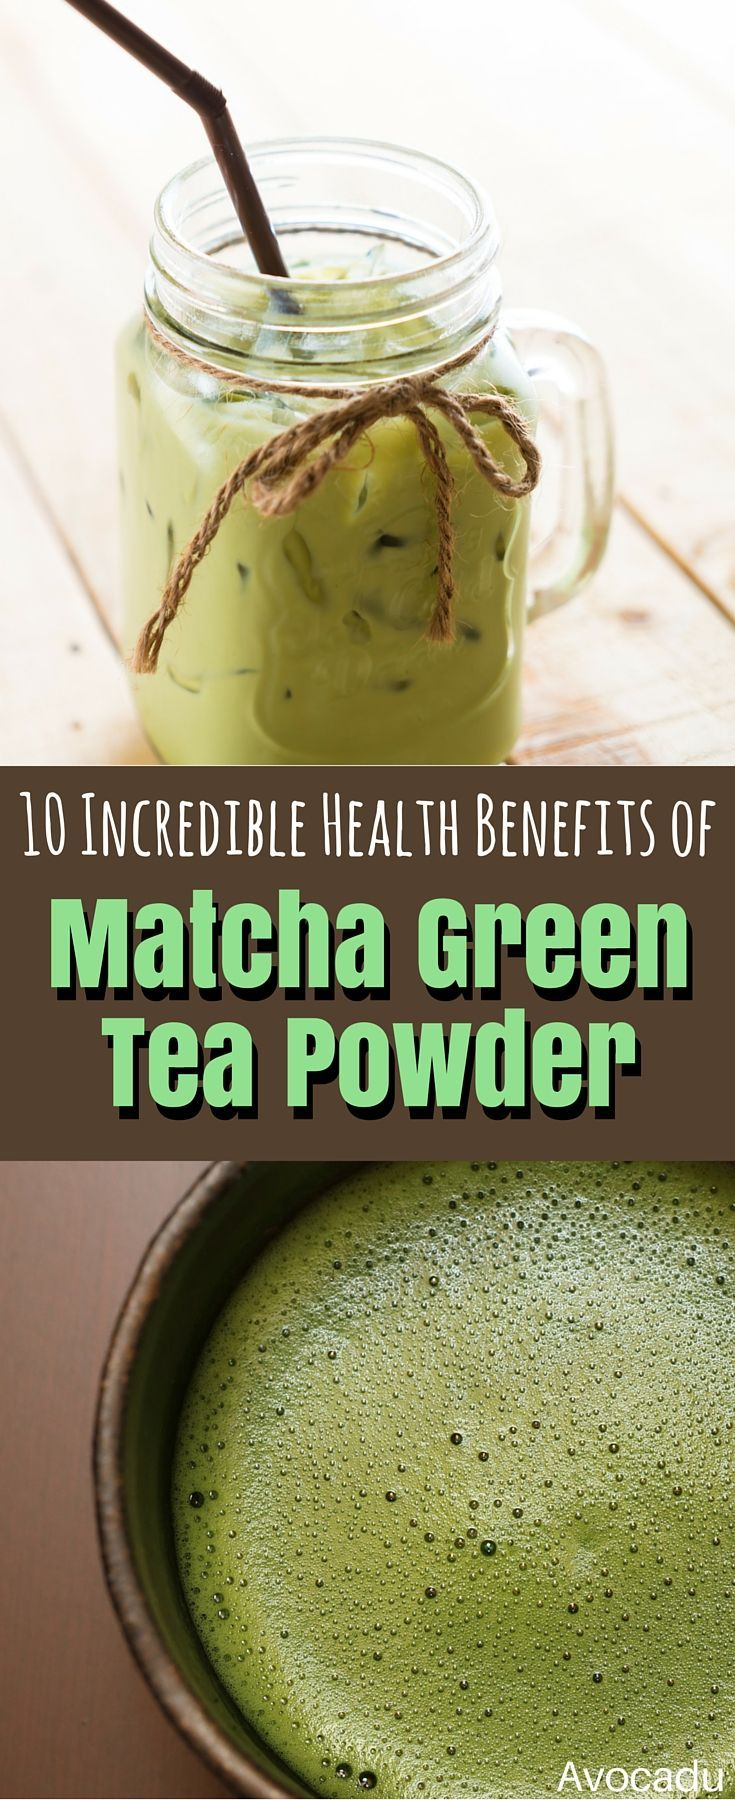 Diet Plans To Lose Weight : Matcha Green Tea Benefits ...